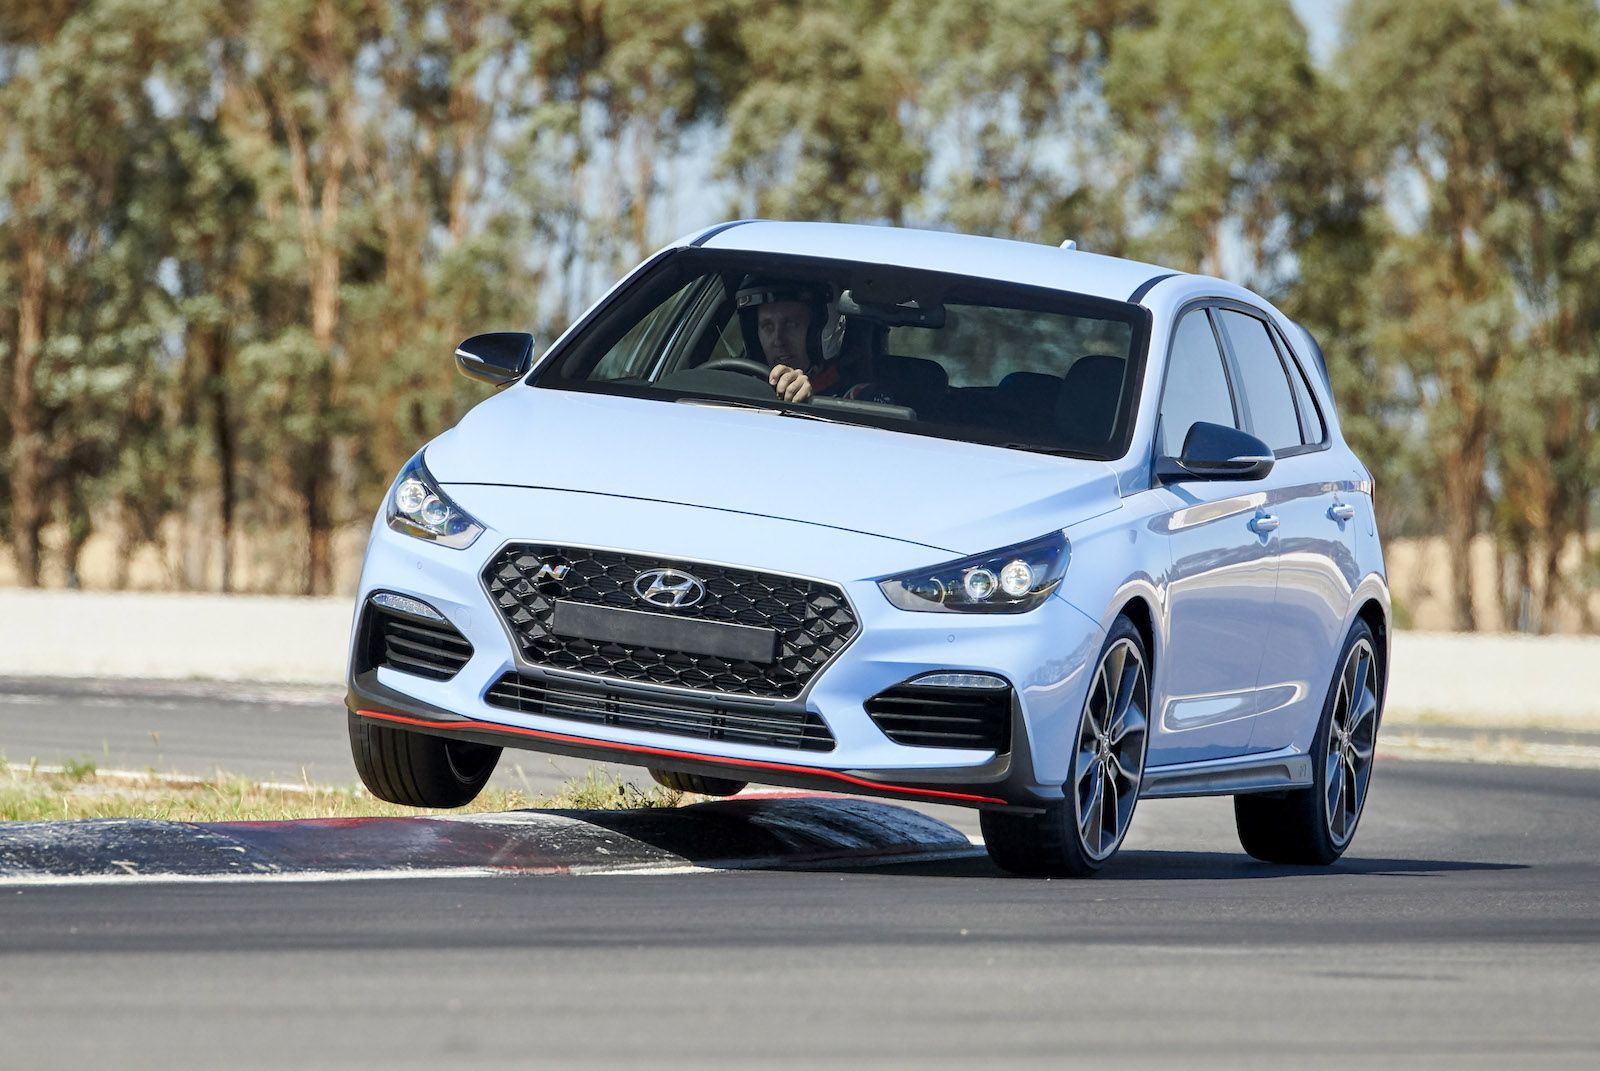 hyundai i30 n warranty covers track use on sale in april. Black Bedroom Furniture Sets. Home Design Ideas